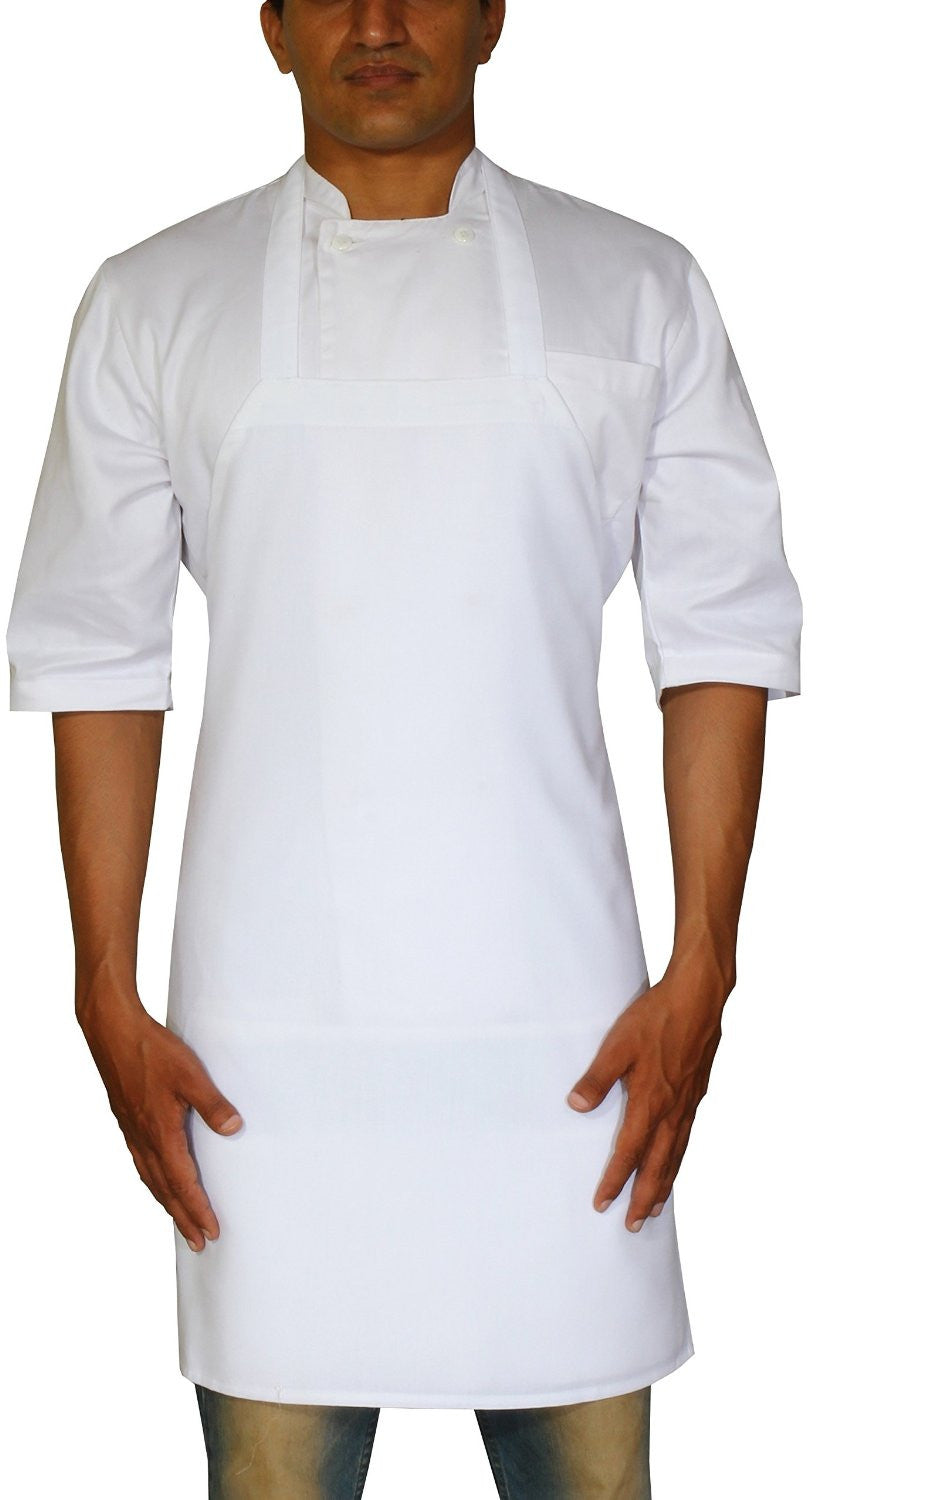 Professional Bib Apron (White-12 Pack)